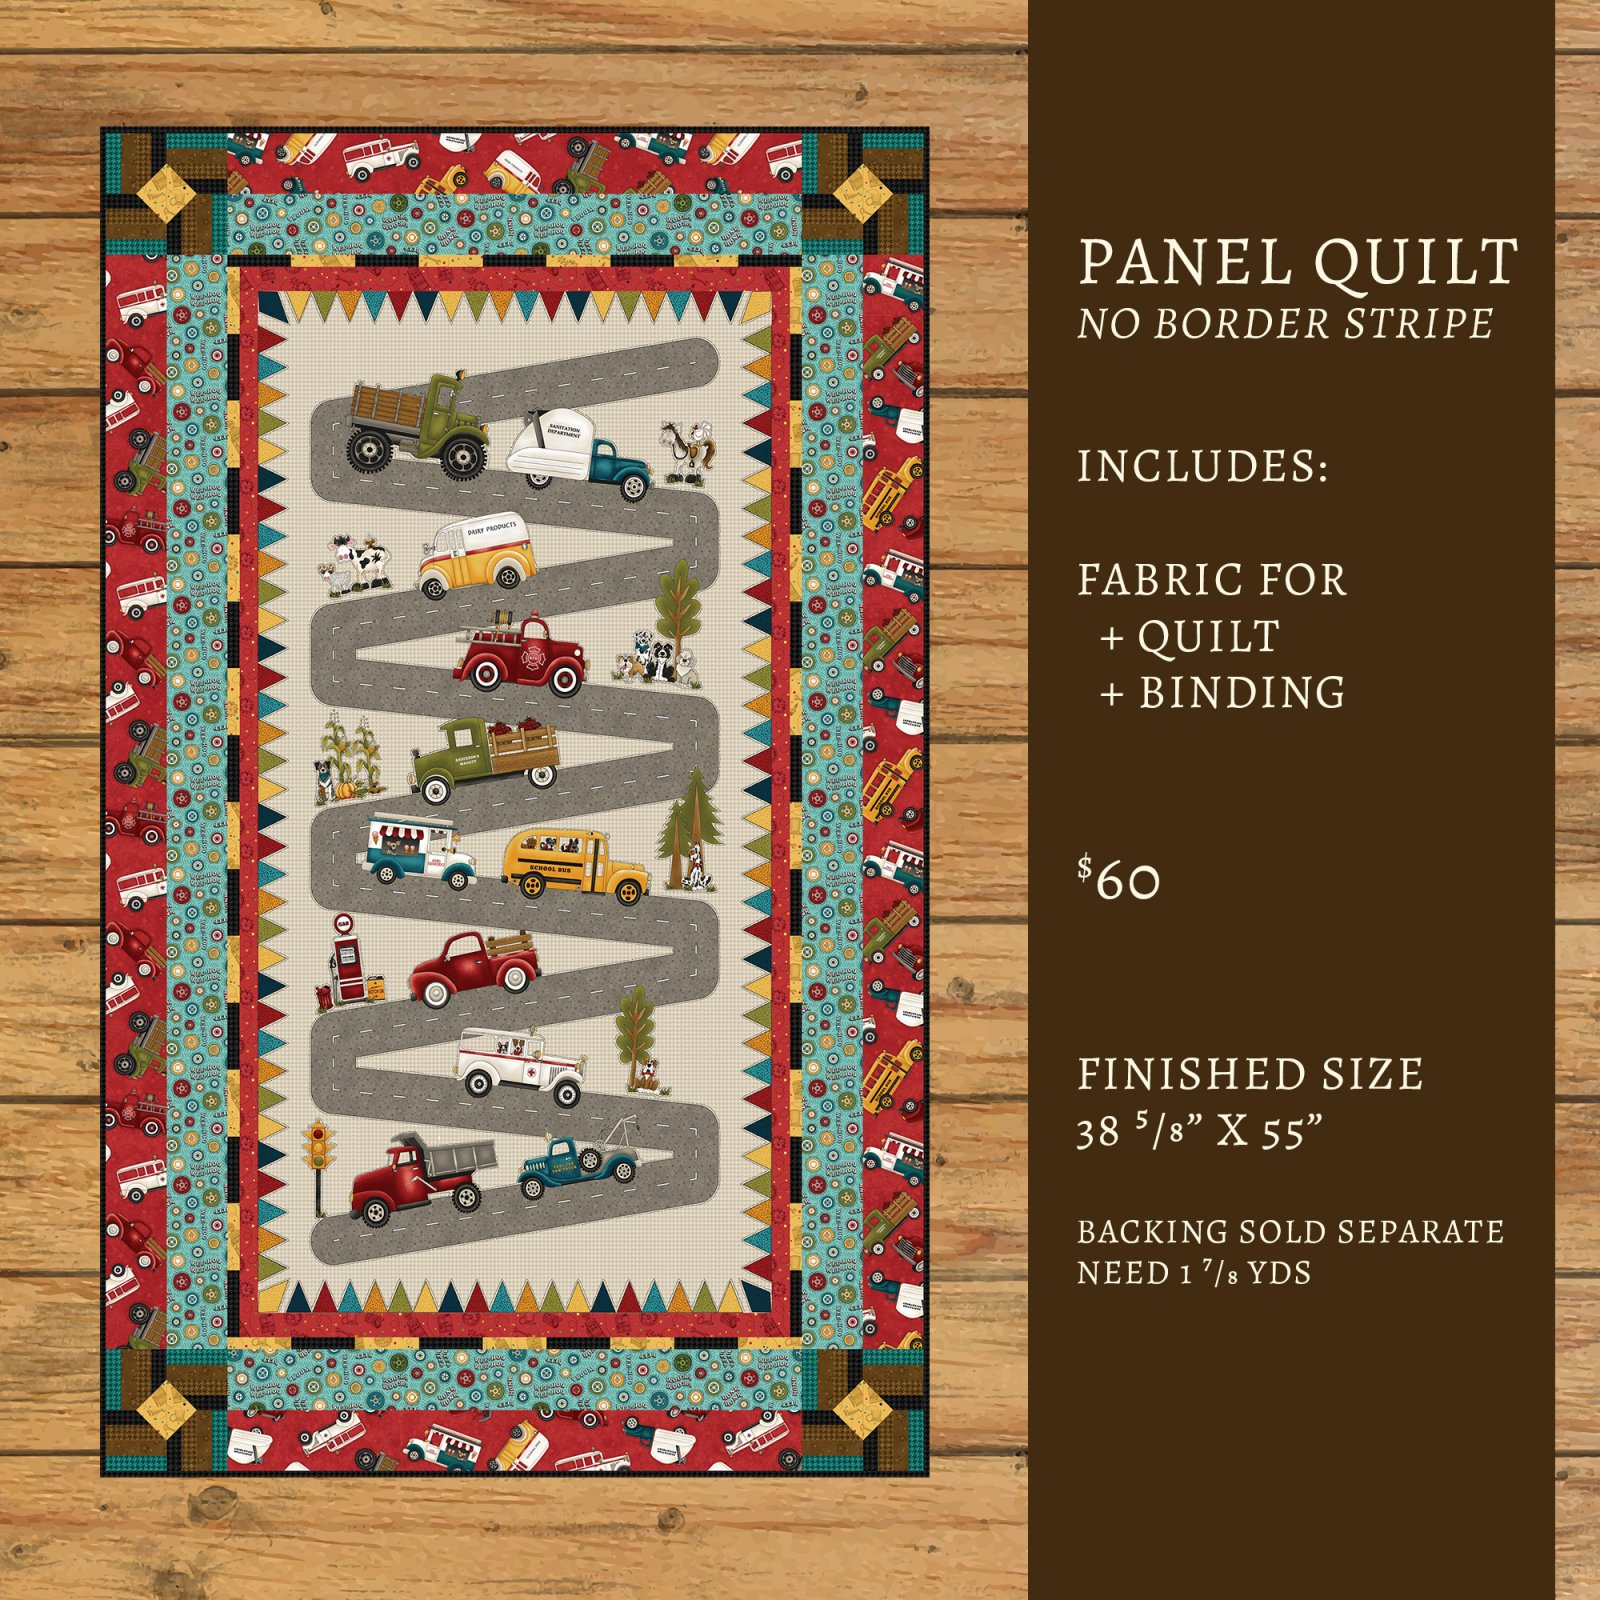 Papa's Old Truck Panel Quilt Kit #1